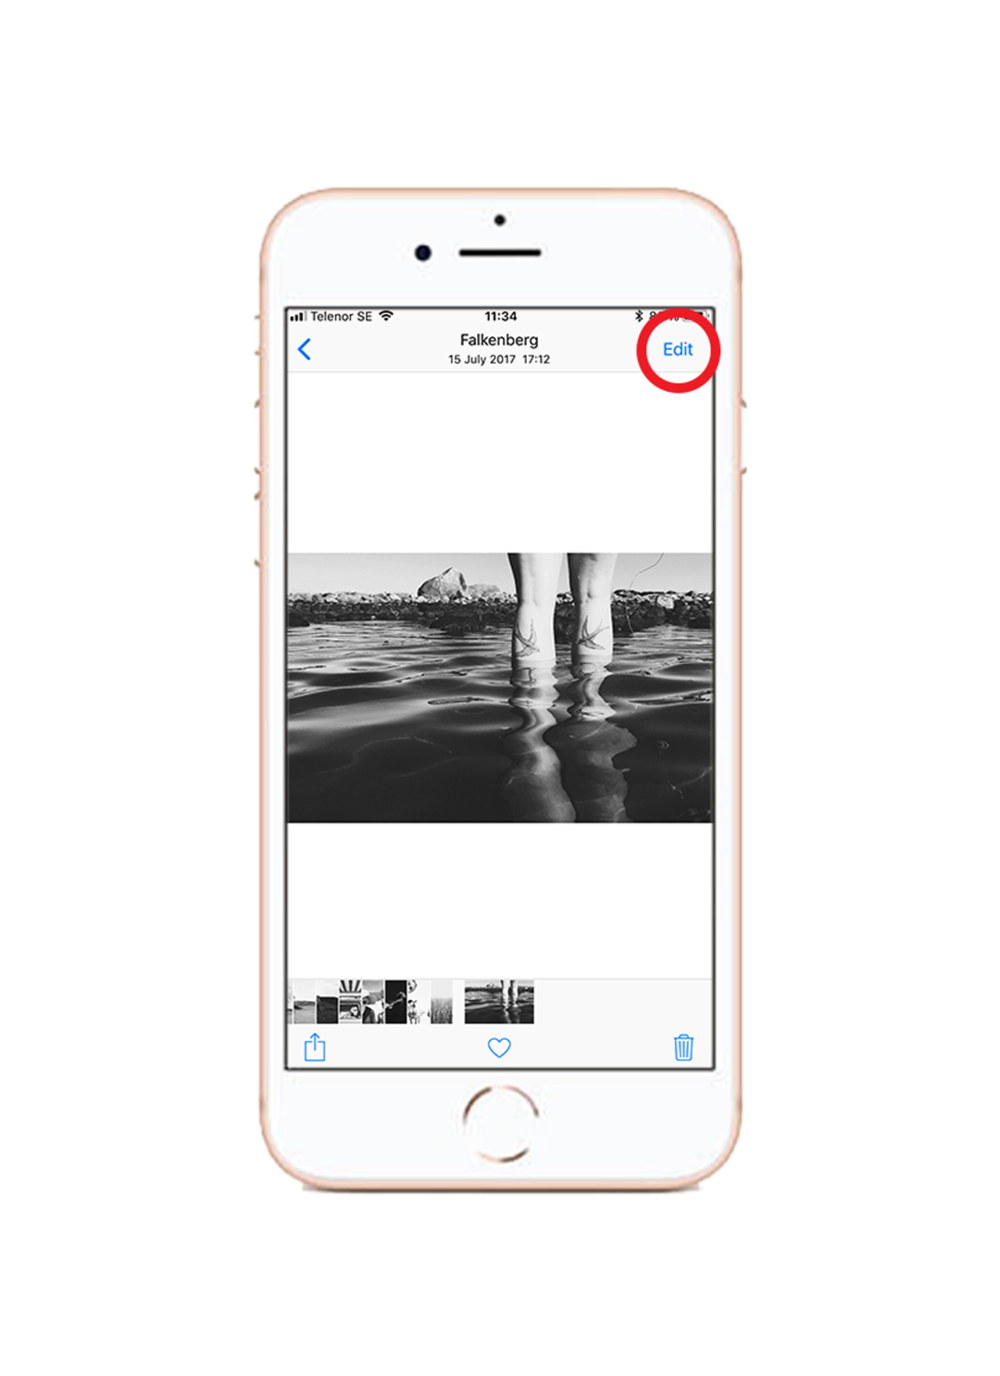 1. Choose edit - When viewing your photo, click the edit button in the top right corner.